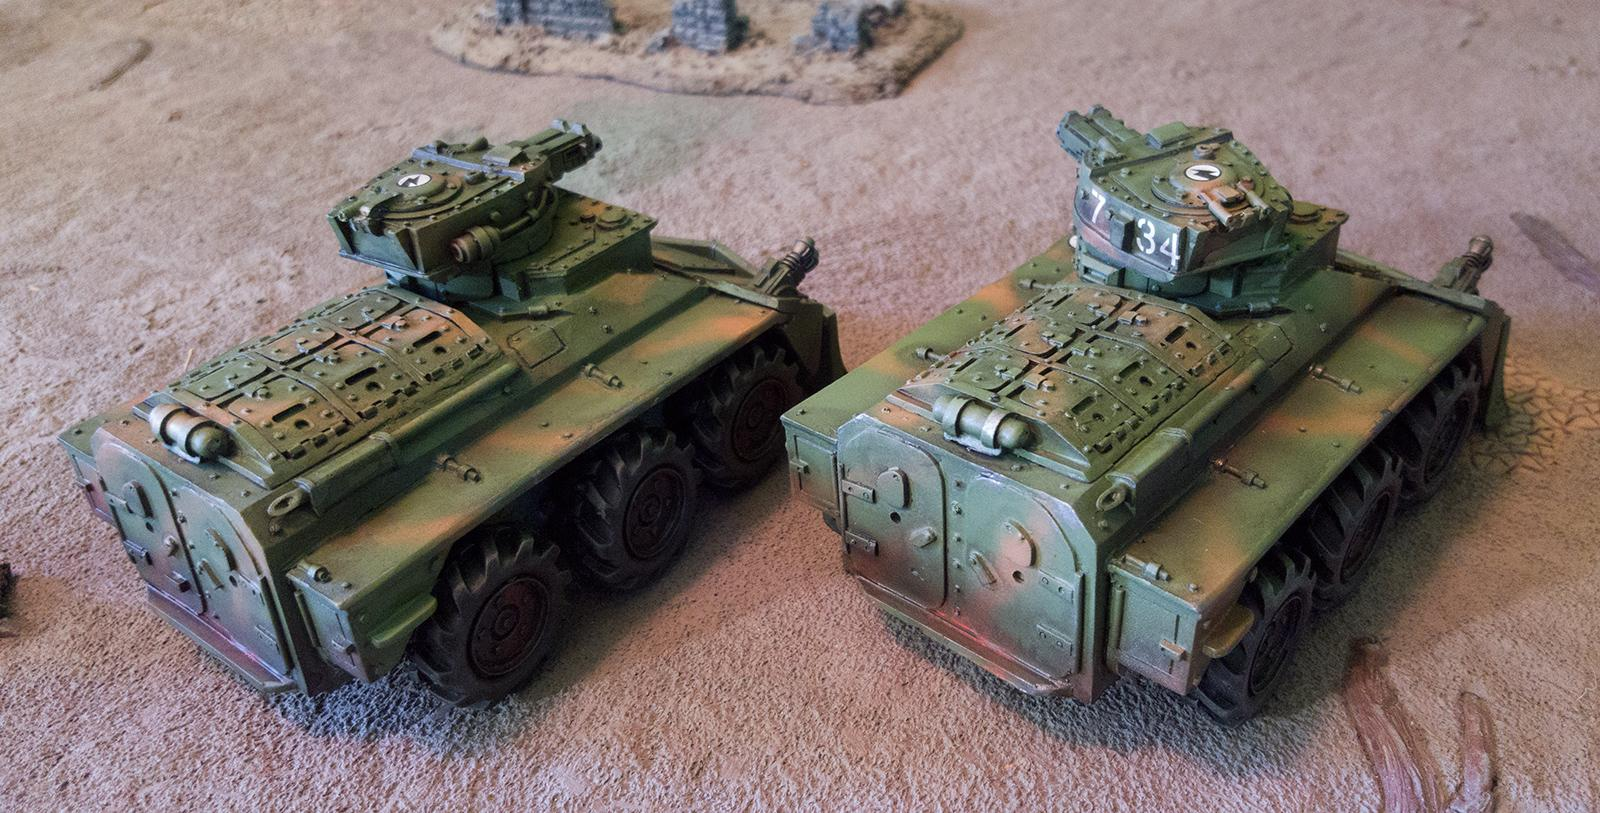 Apc, Chaos, Chimera, Conversion, Ouze, Ramshackle, Ramshackle Games, Traitor Guard, Warchimera